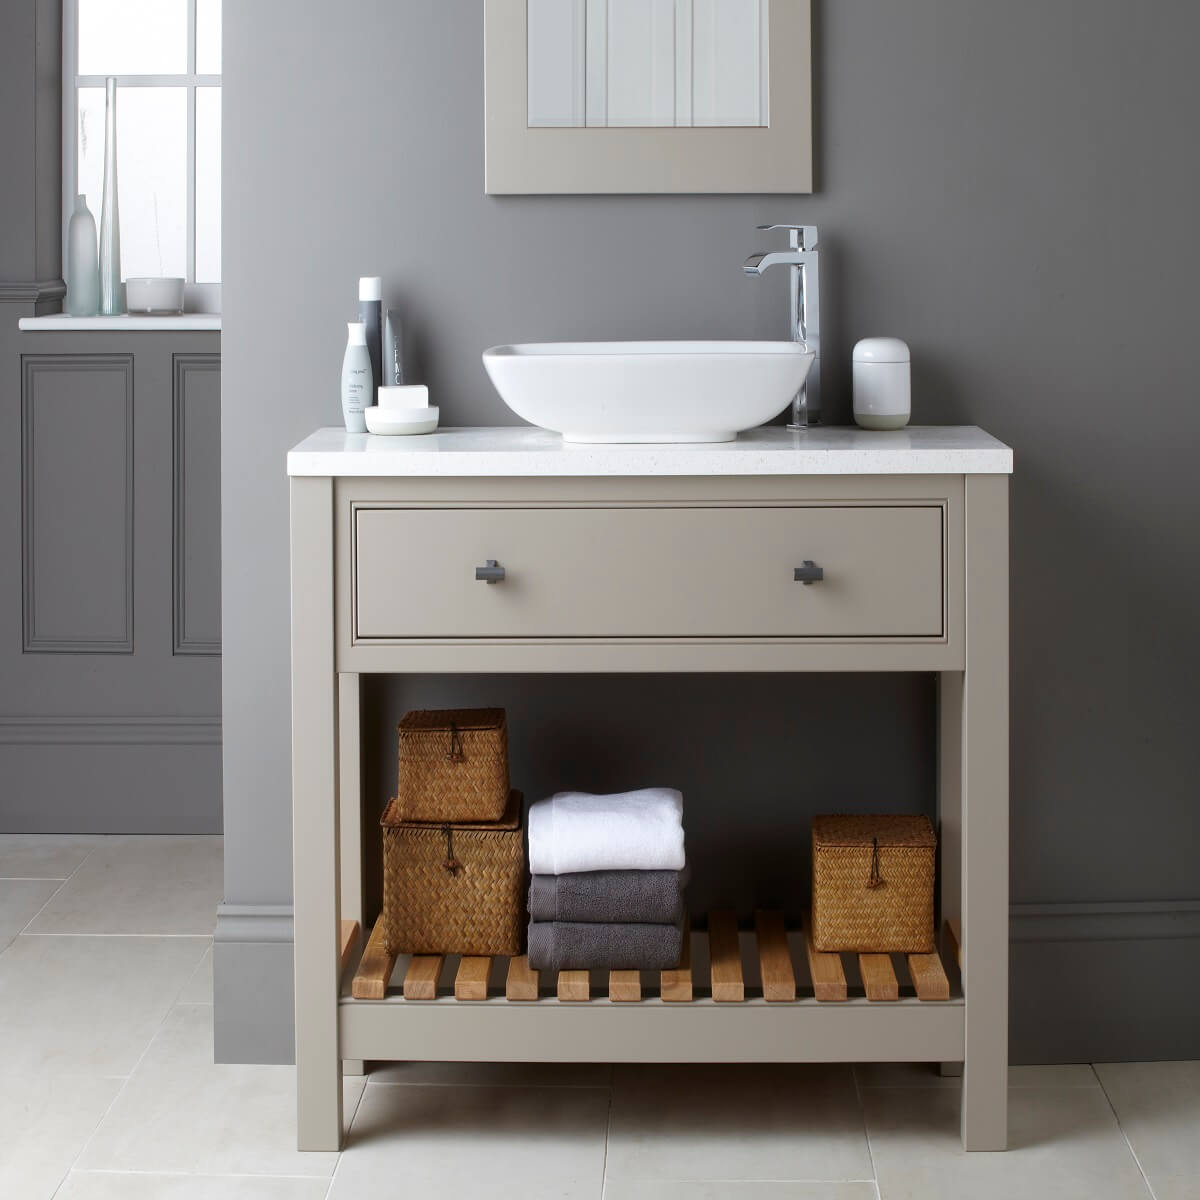 Burbidge Langton Washstand & Worktop